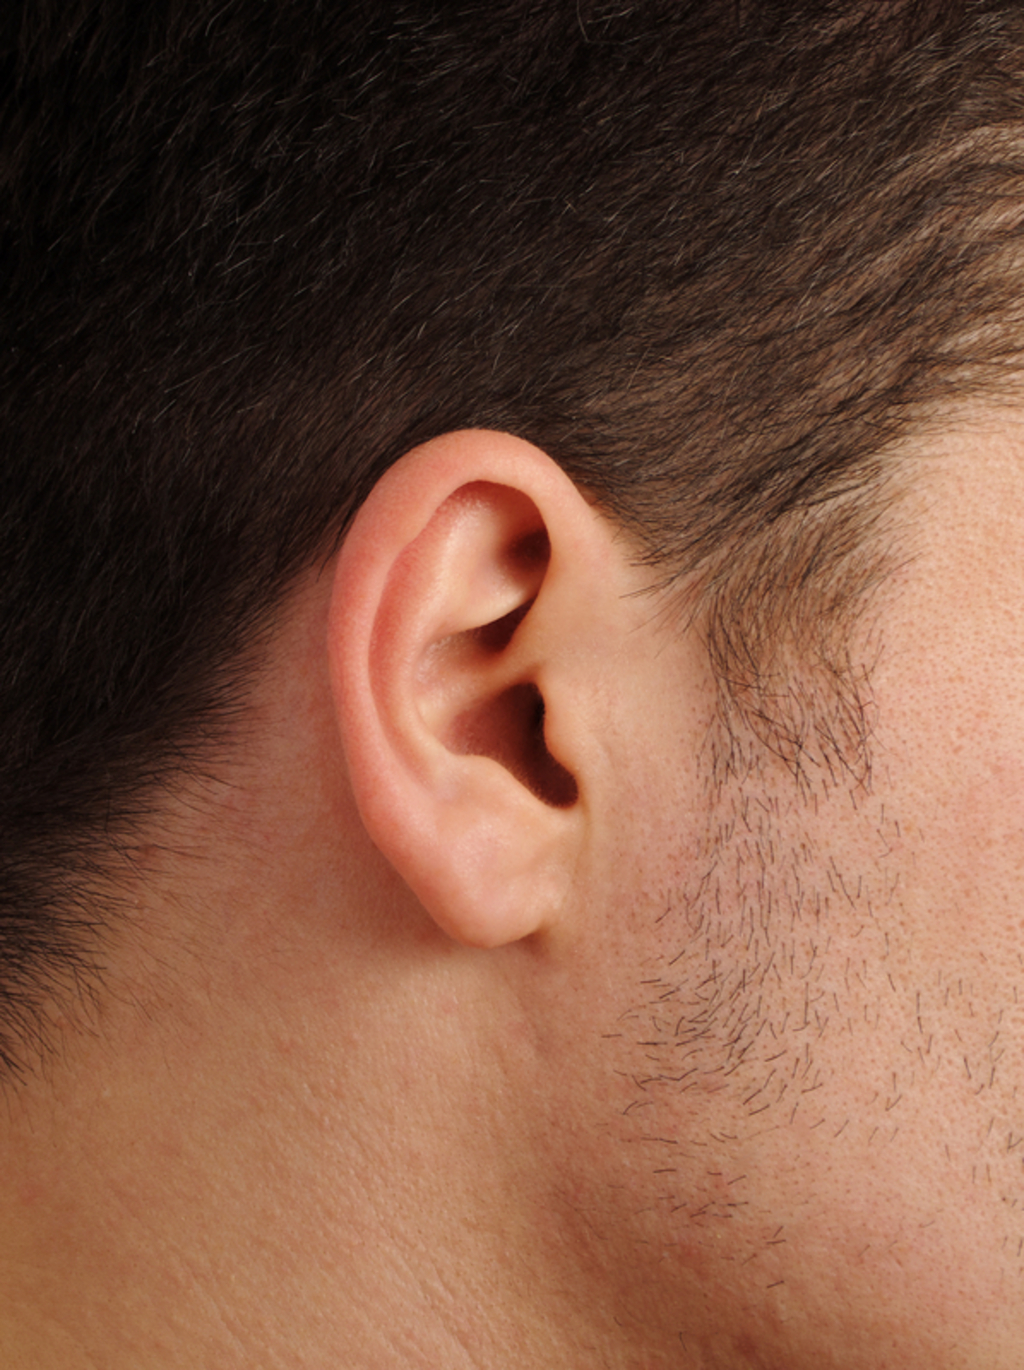 Protruding Ears - Doctor answers on HealthTap